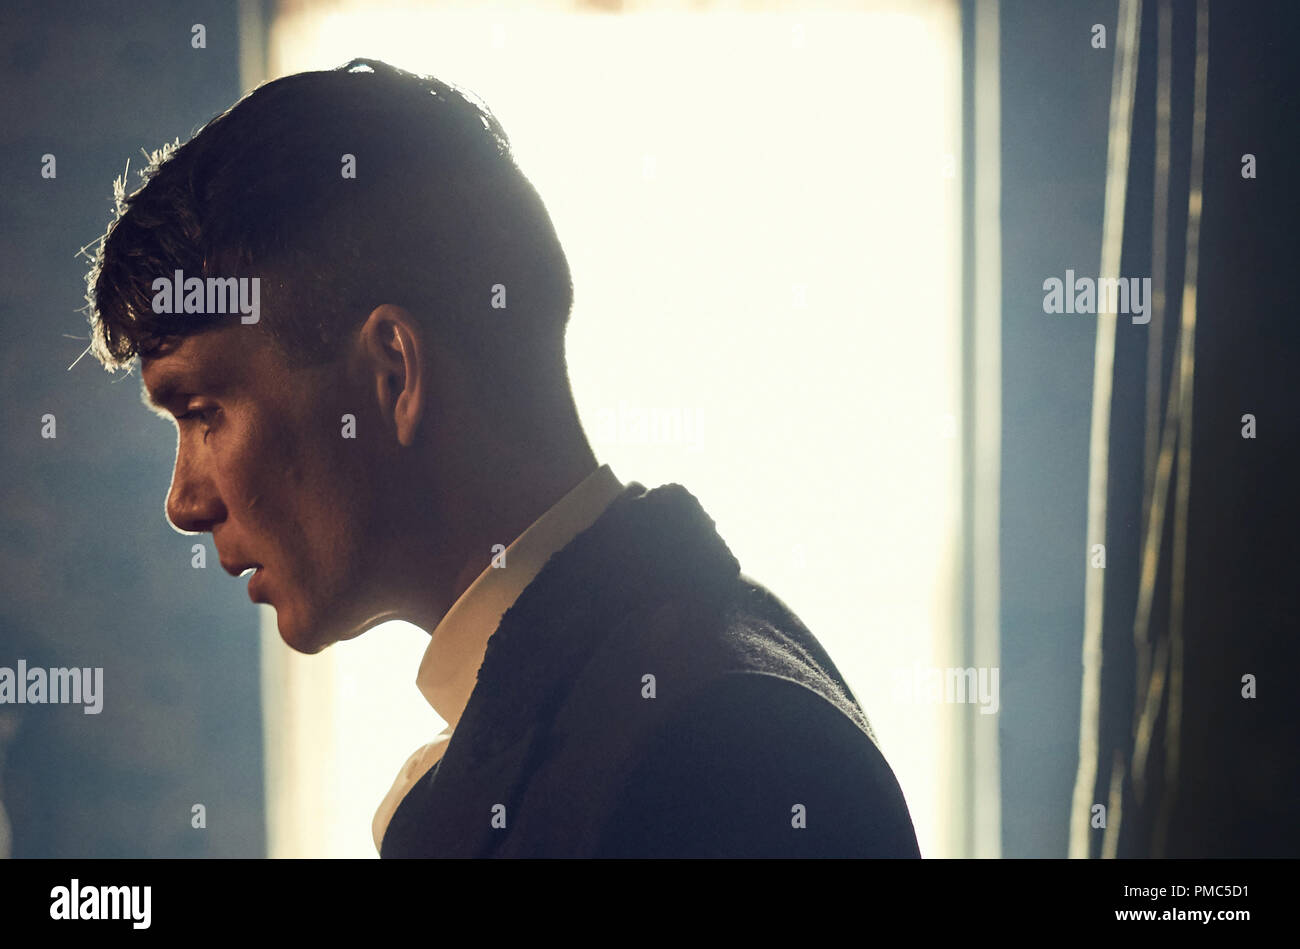 e211d0251a1 Peaky Blinders Tv Stock Photos   Peaky Blinders Tv Stock Images - Alamy